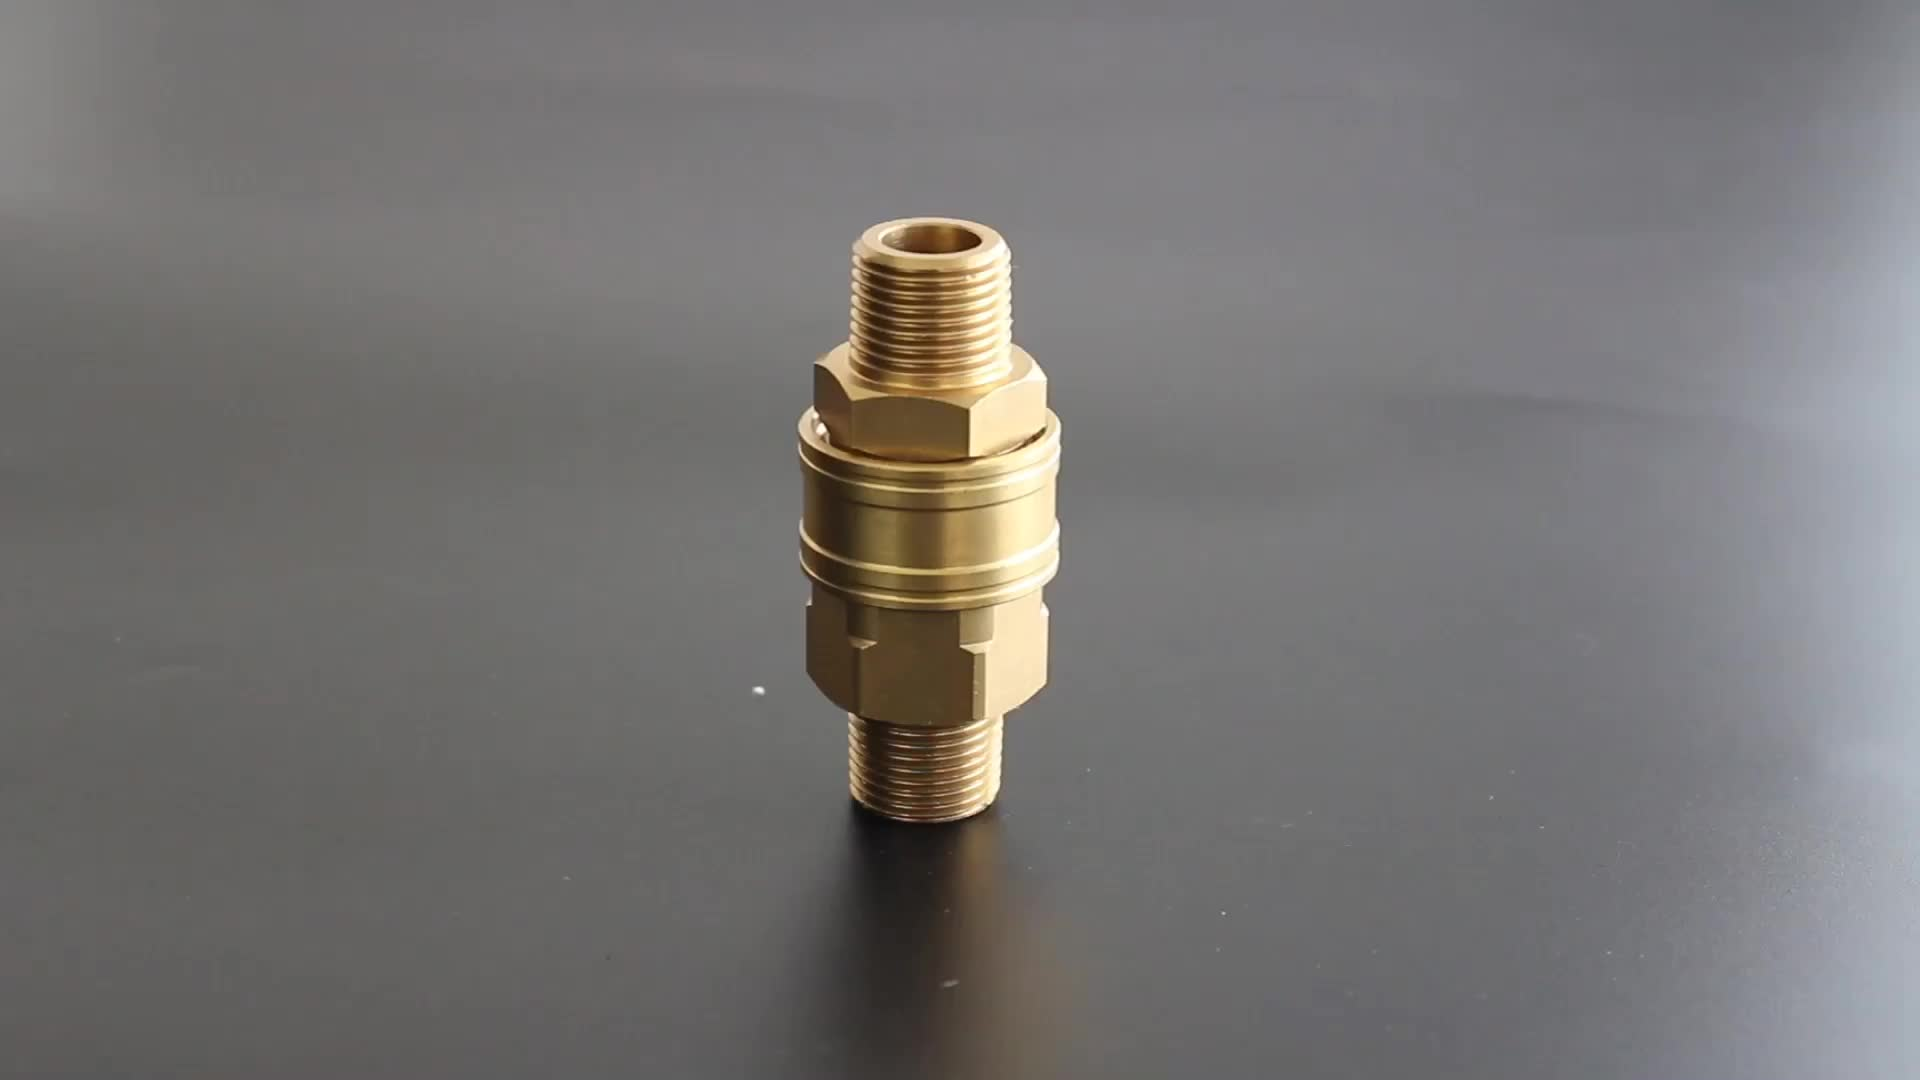 ZJ-KB brass high pressure washer straight through quick disconnect hose fittings